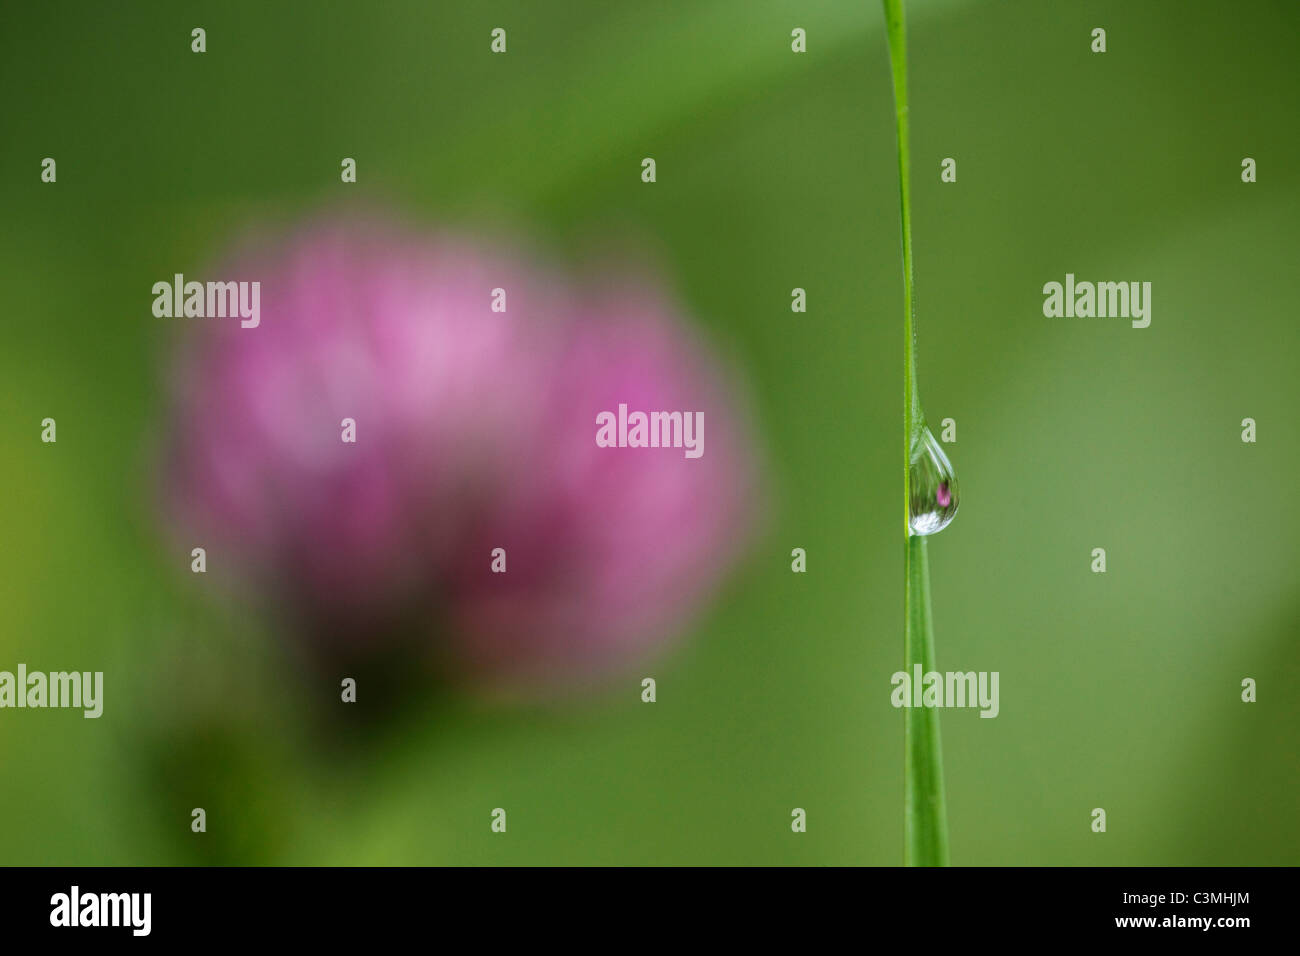 Germany, Water drop on blade of grass, close-up - Stock Image